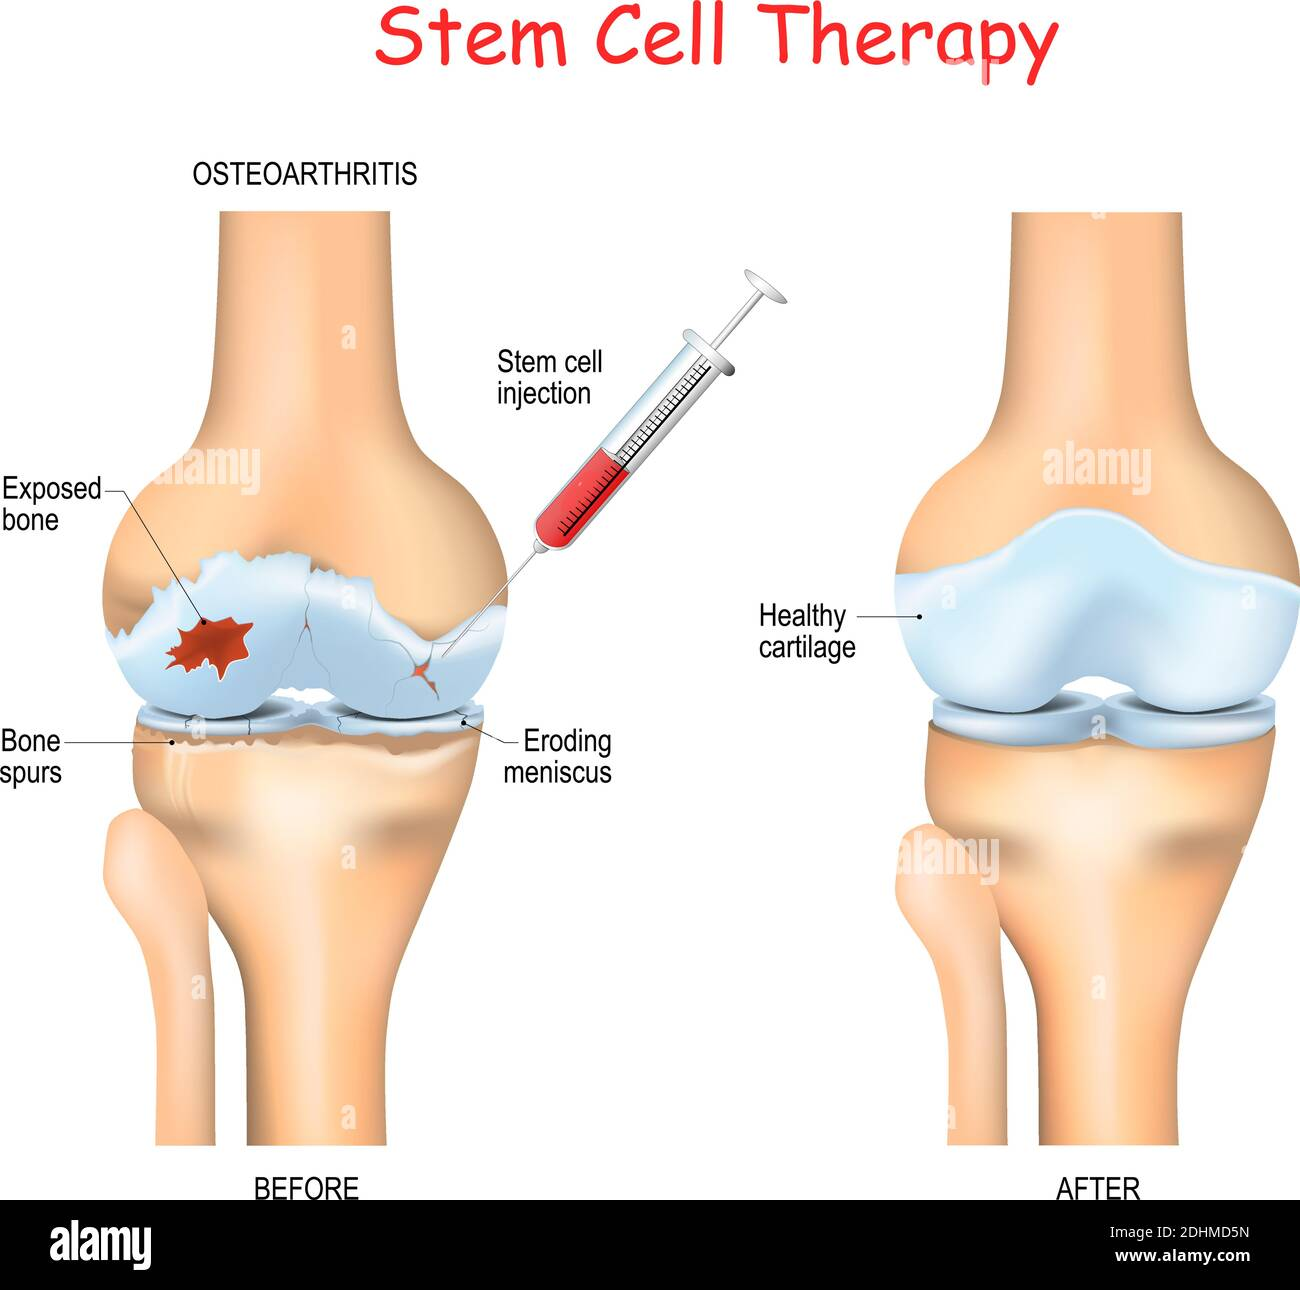 Stem Cell Therapy High Resolution Stock Photography And Images Alamy